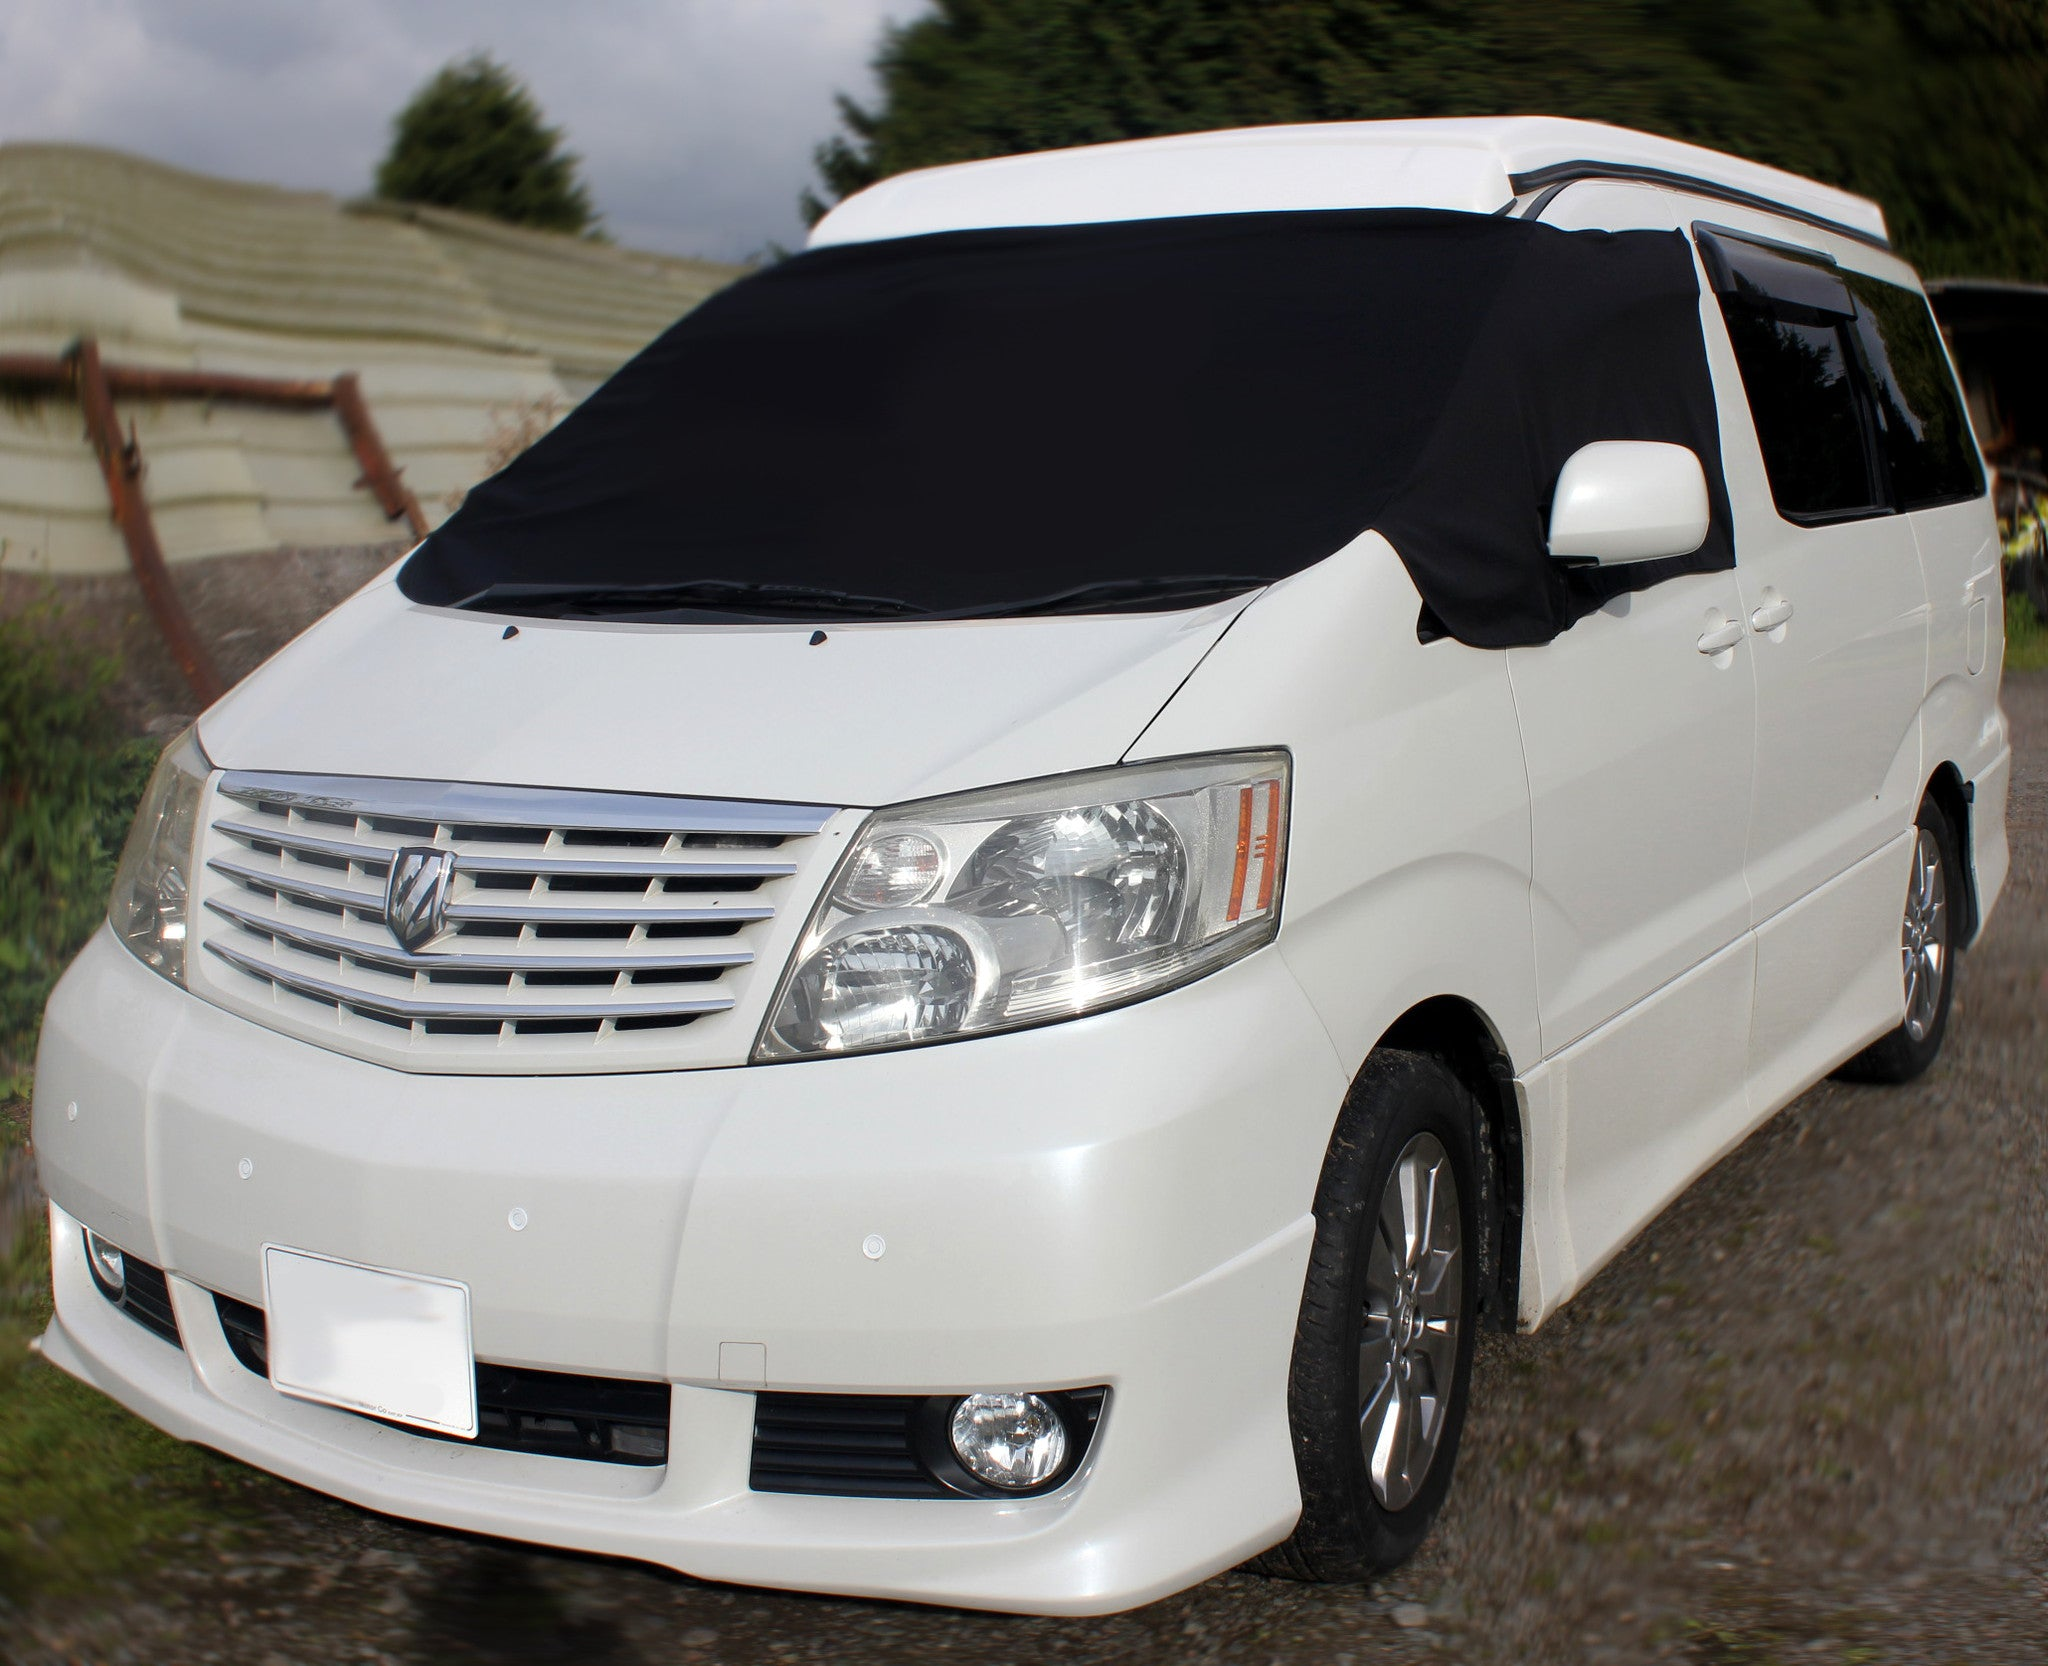 Toyota Alphard Screen Cover - Plain